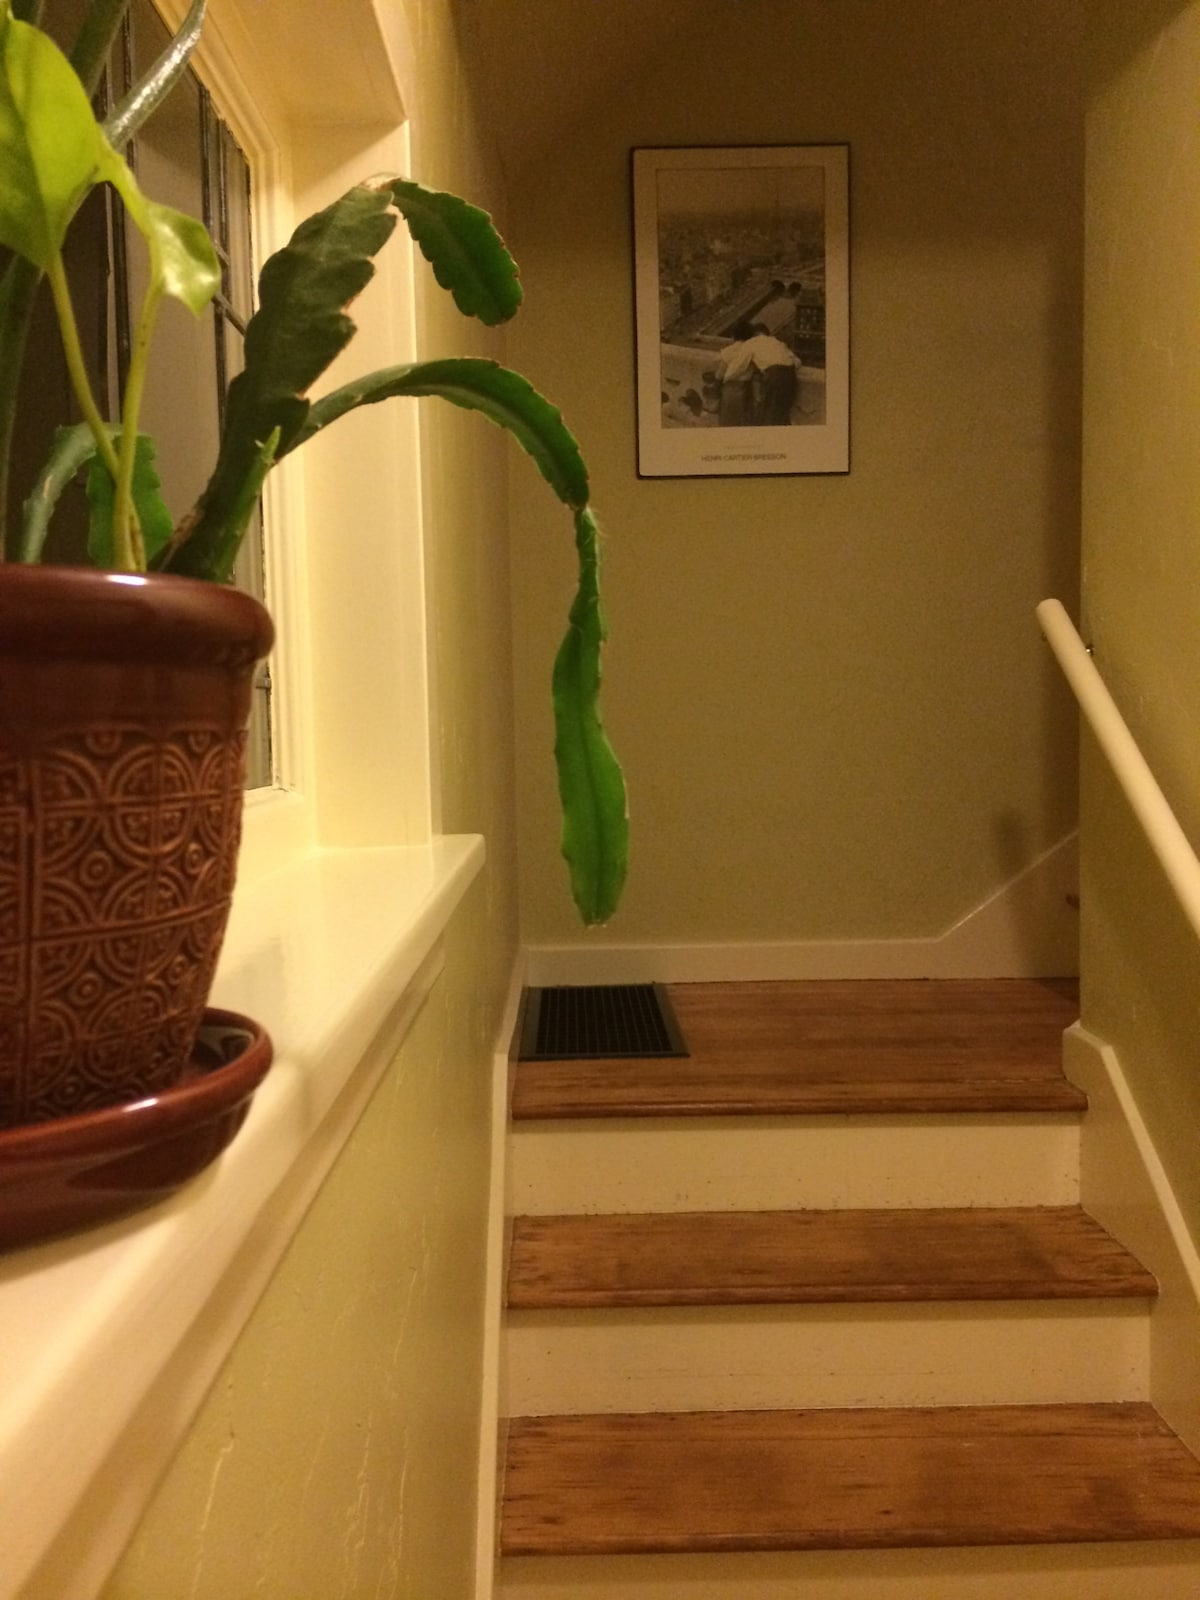 The entry way leading to the upstairs rooms.